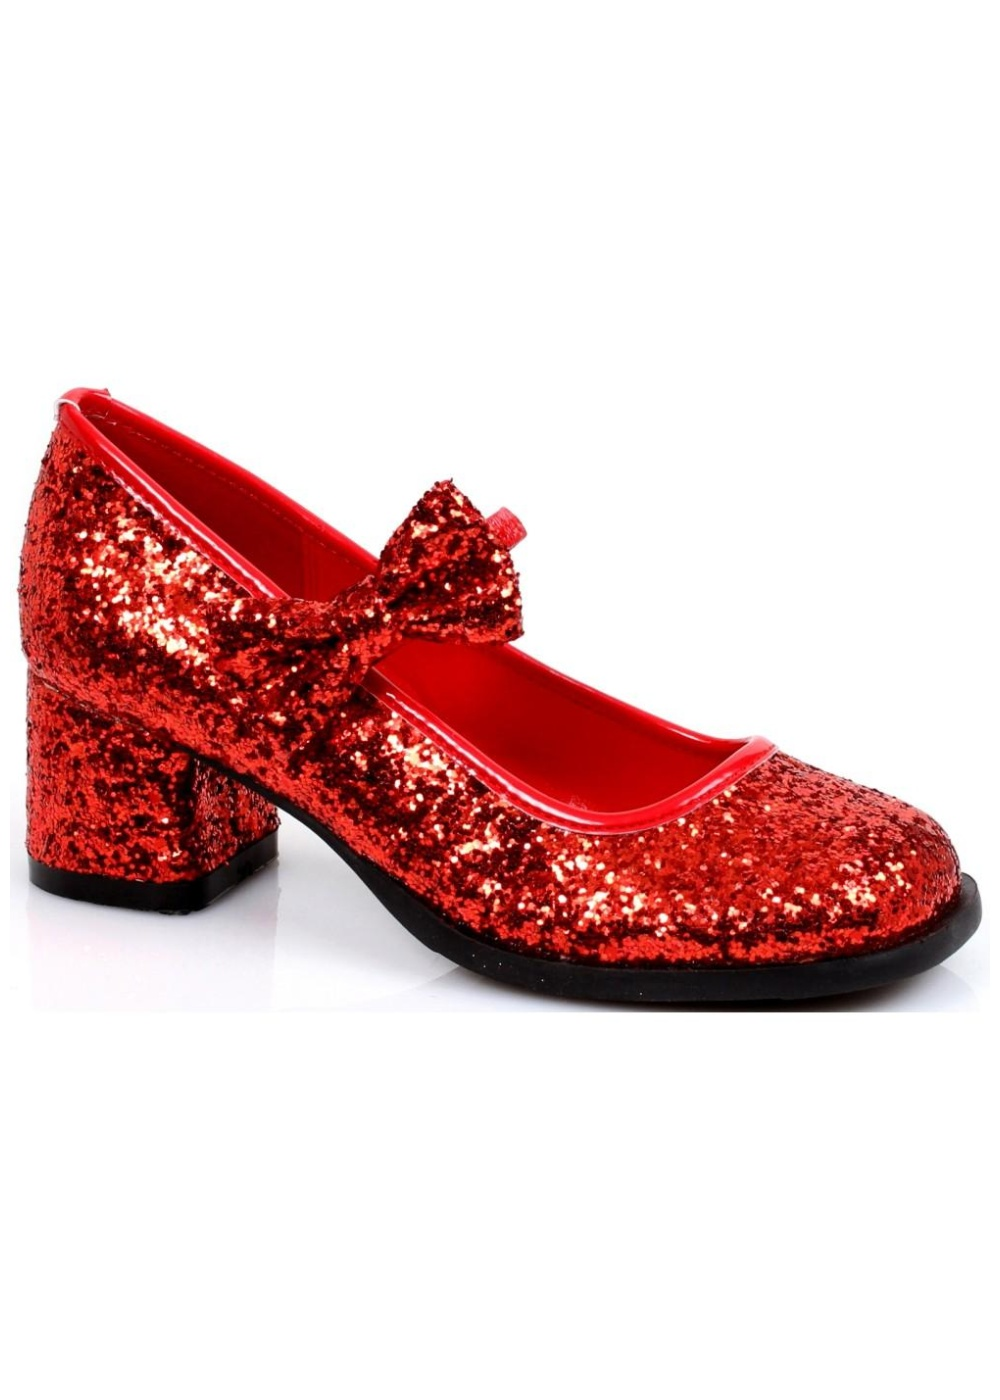 Shop girls red glitter shoes, sequin shoes, glitter flats, glitter flip flops and glittering Mary Jane shoes. We carry every color imaginable, so she can find the perfect pair of girls glitter shoes at specialtysports.ga!